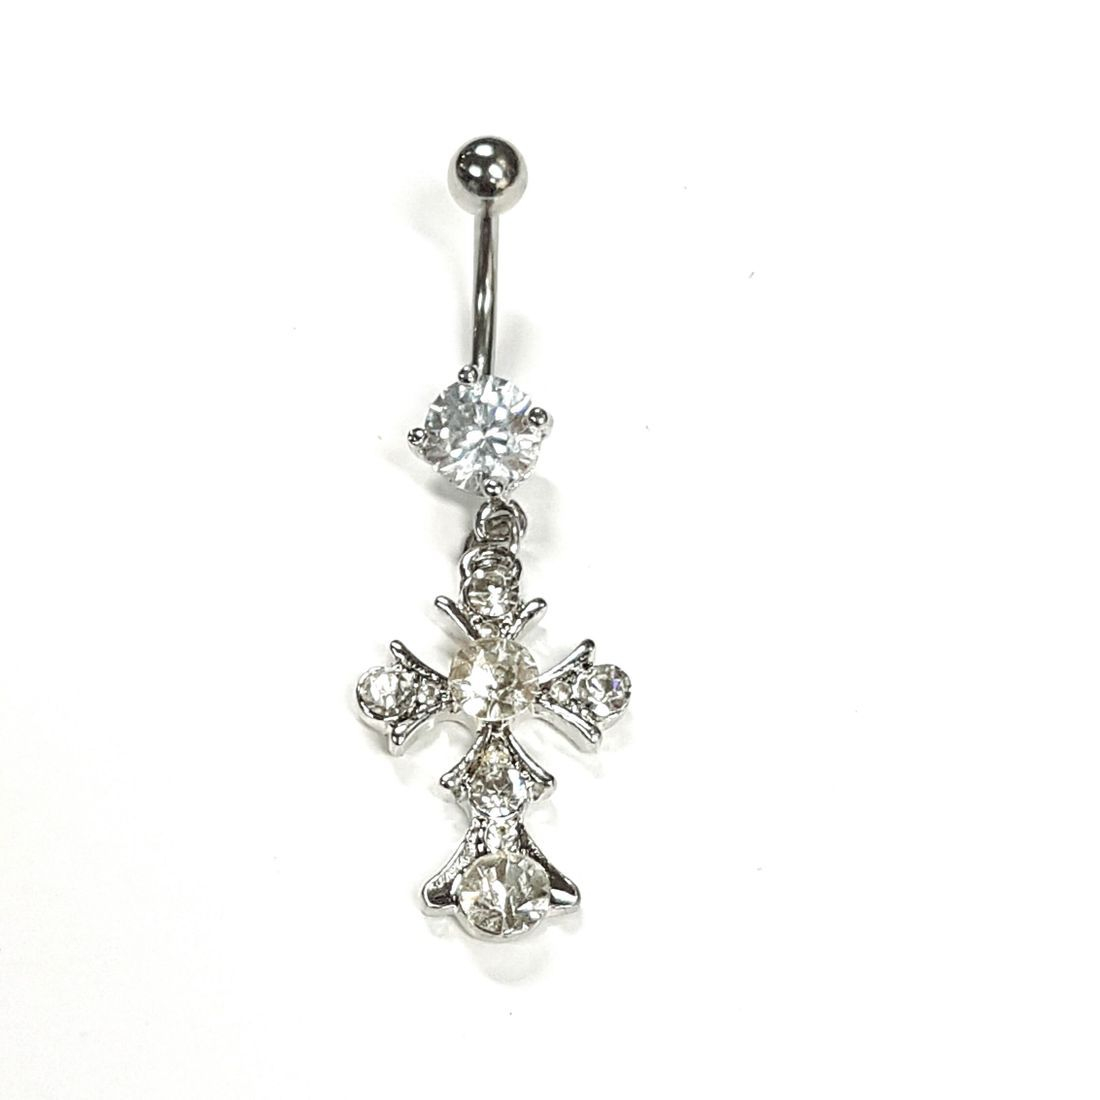 1.6mm x 10mm Clear Crystal Cross Titanium Navel Bar  available at Kazbah online and our Leicester City Centre Shop